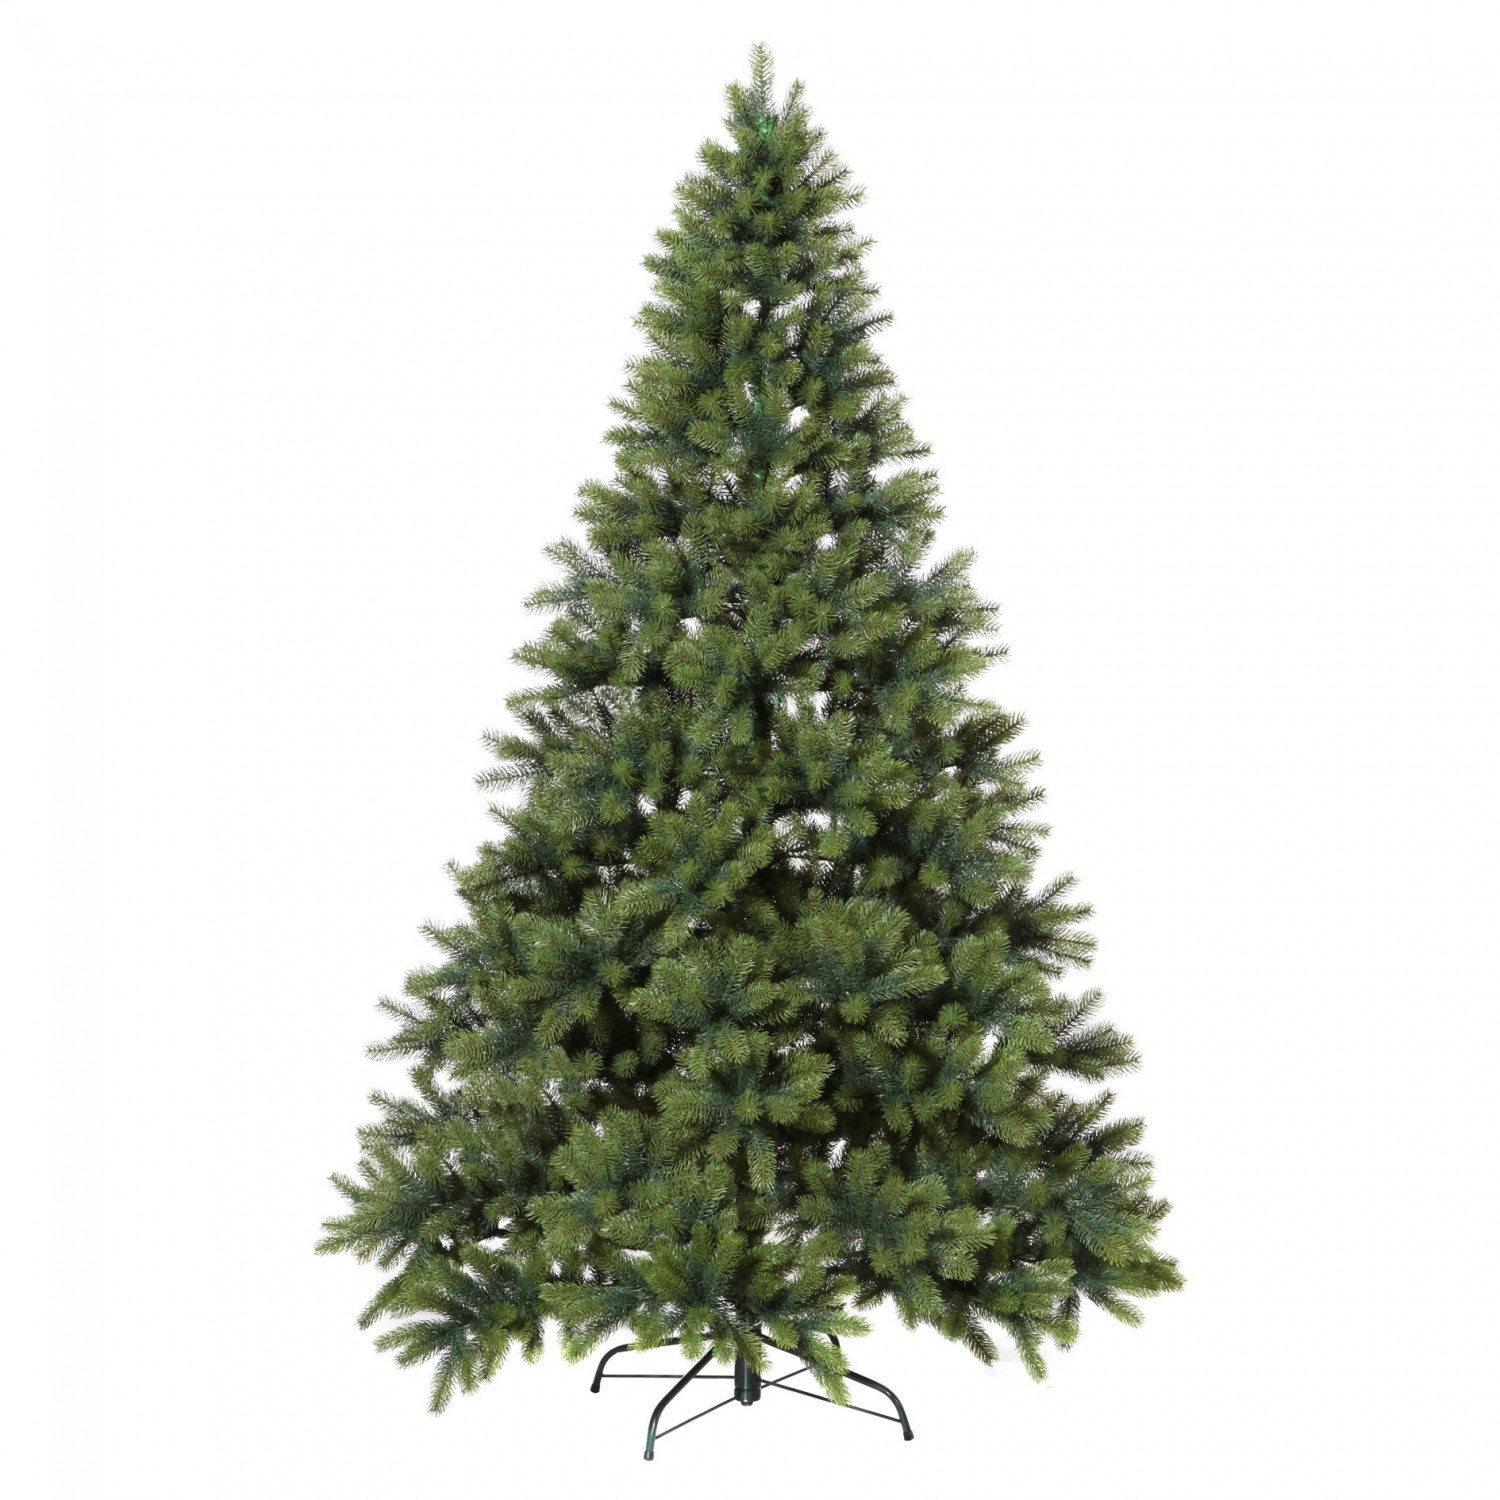 Single tannenbaum